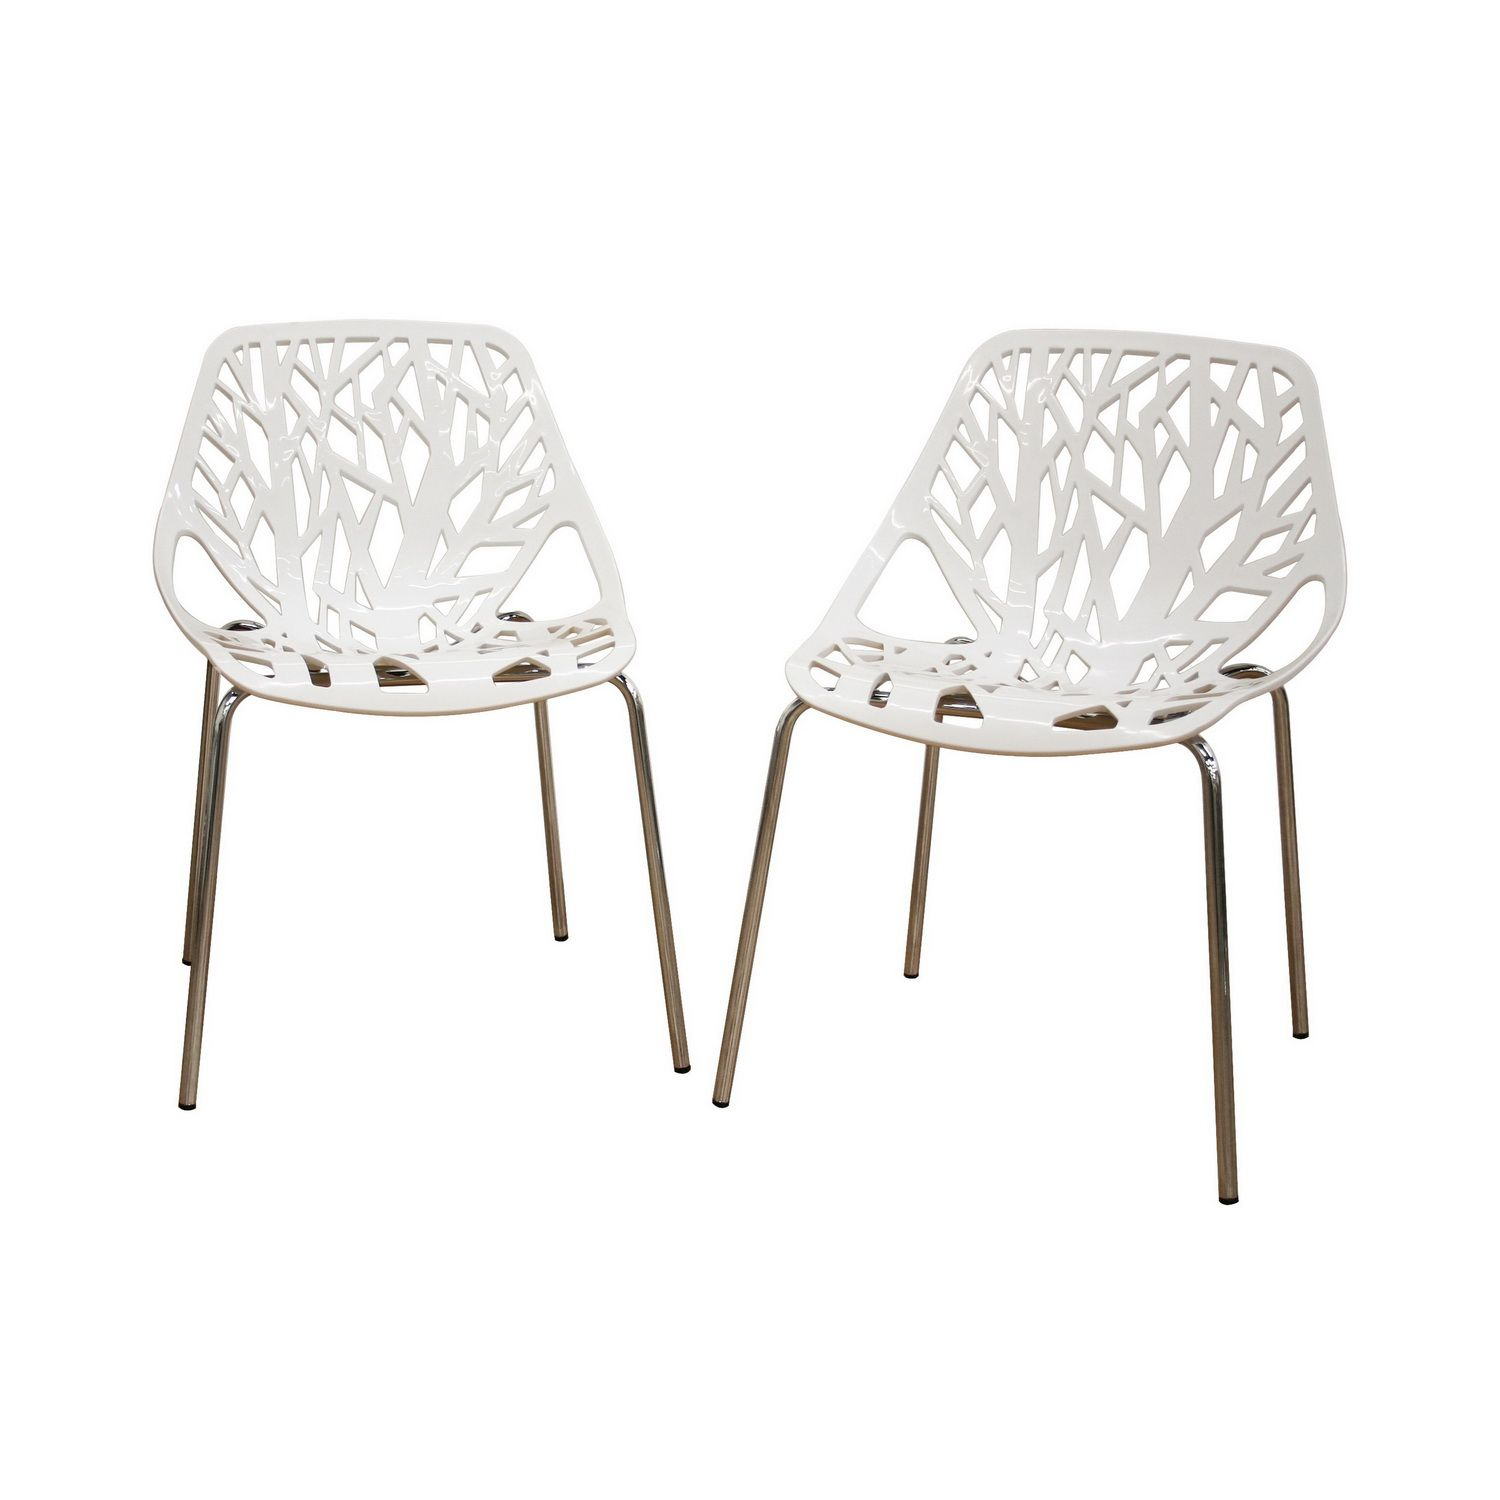 white plastic chair folding quad with adjustable lumbar support baxton studio birch sapling accent dining